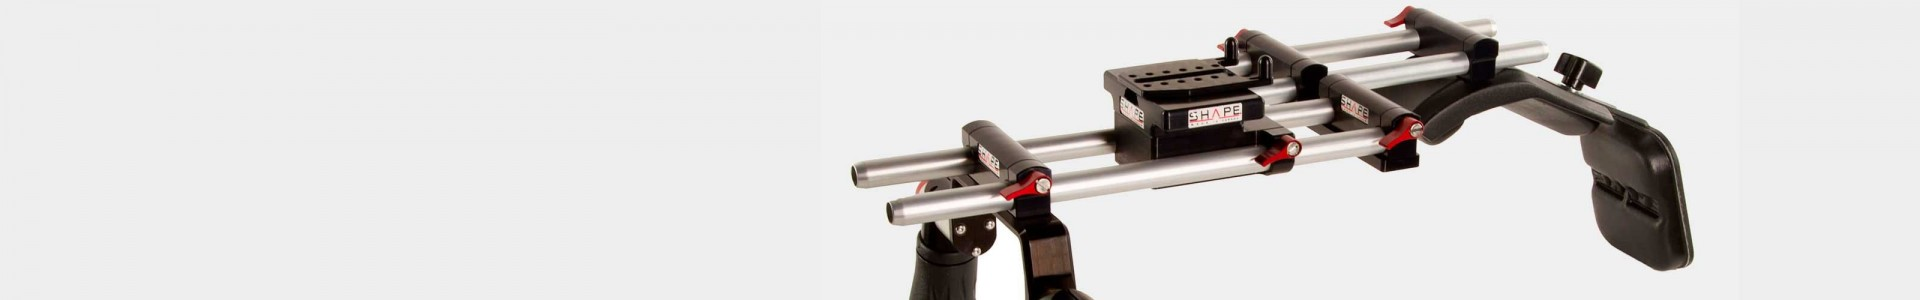 Shape professional camera accessories - Avacab official dealer